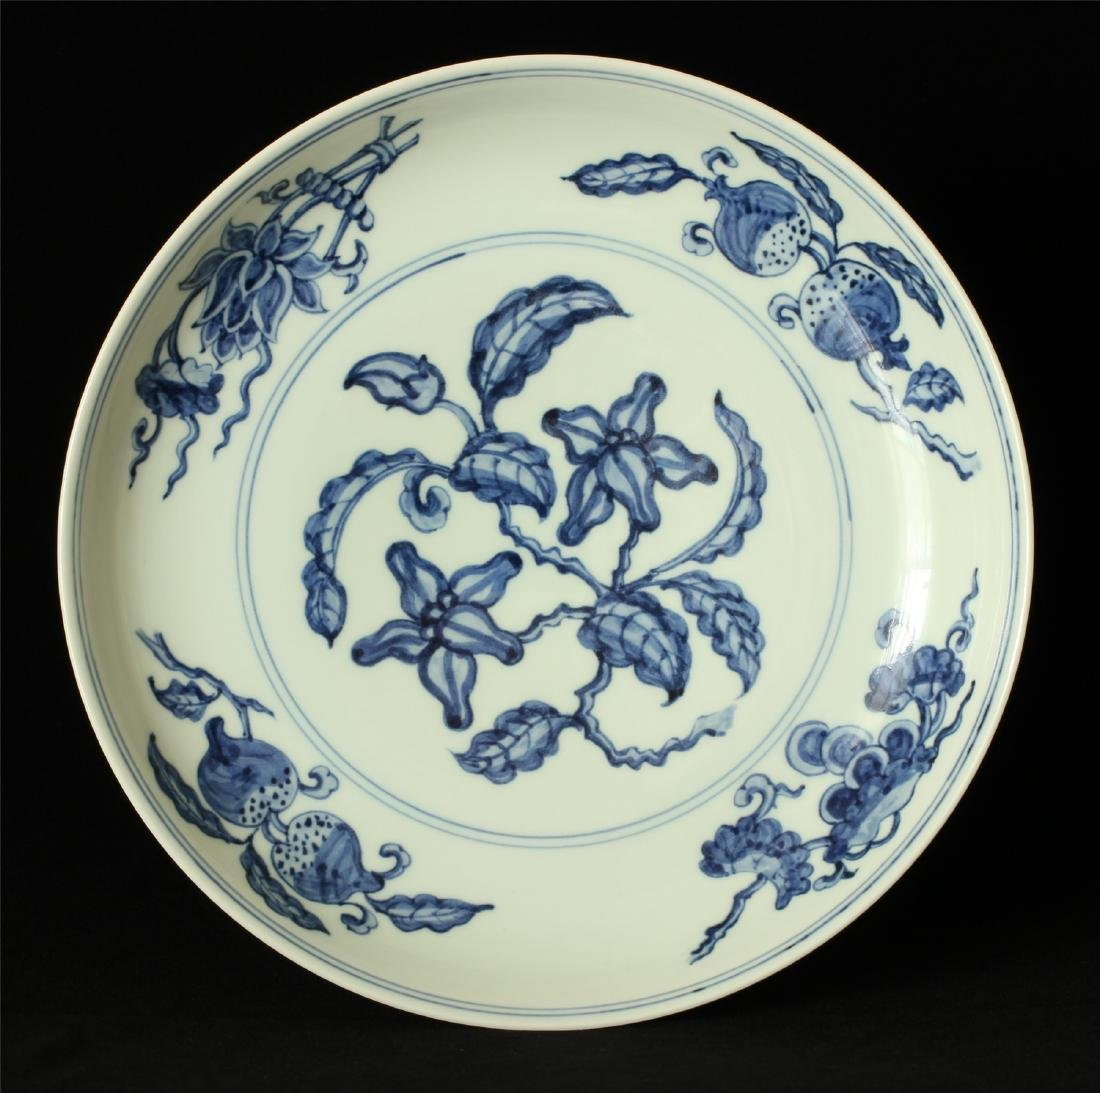 Blue and white porcelain plate of Ming Dynasty HongZhi